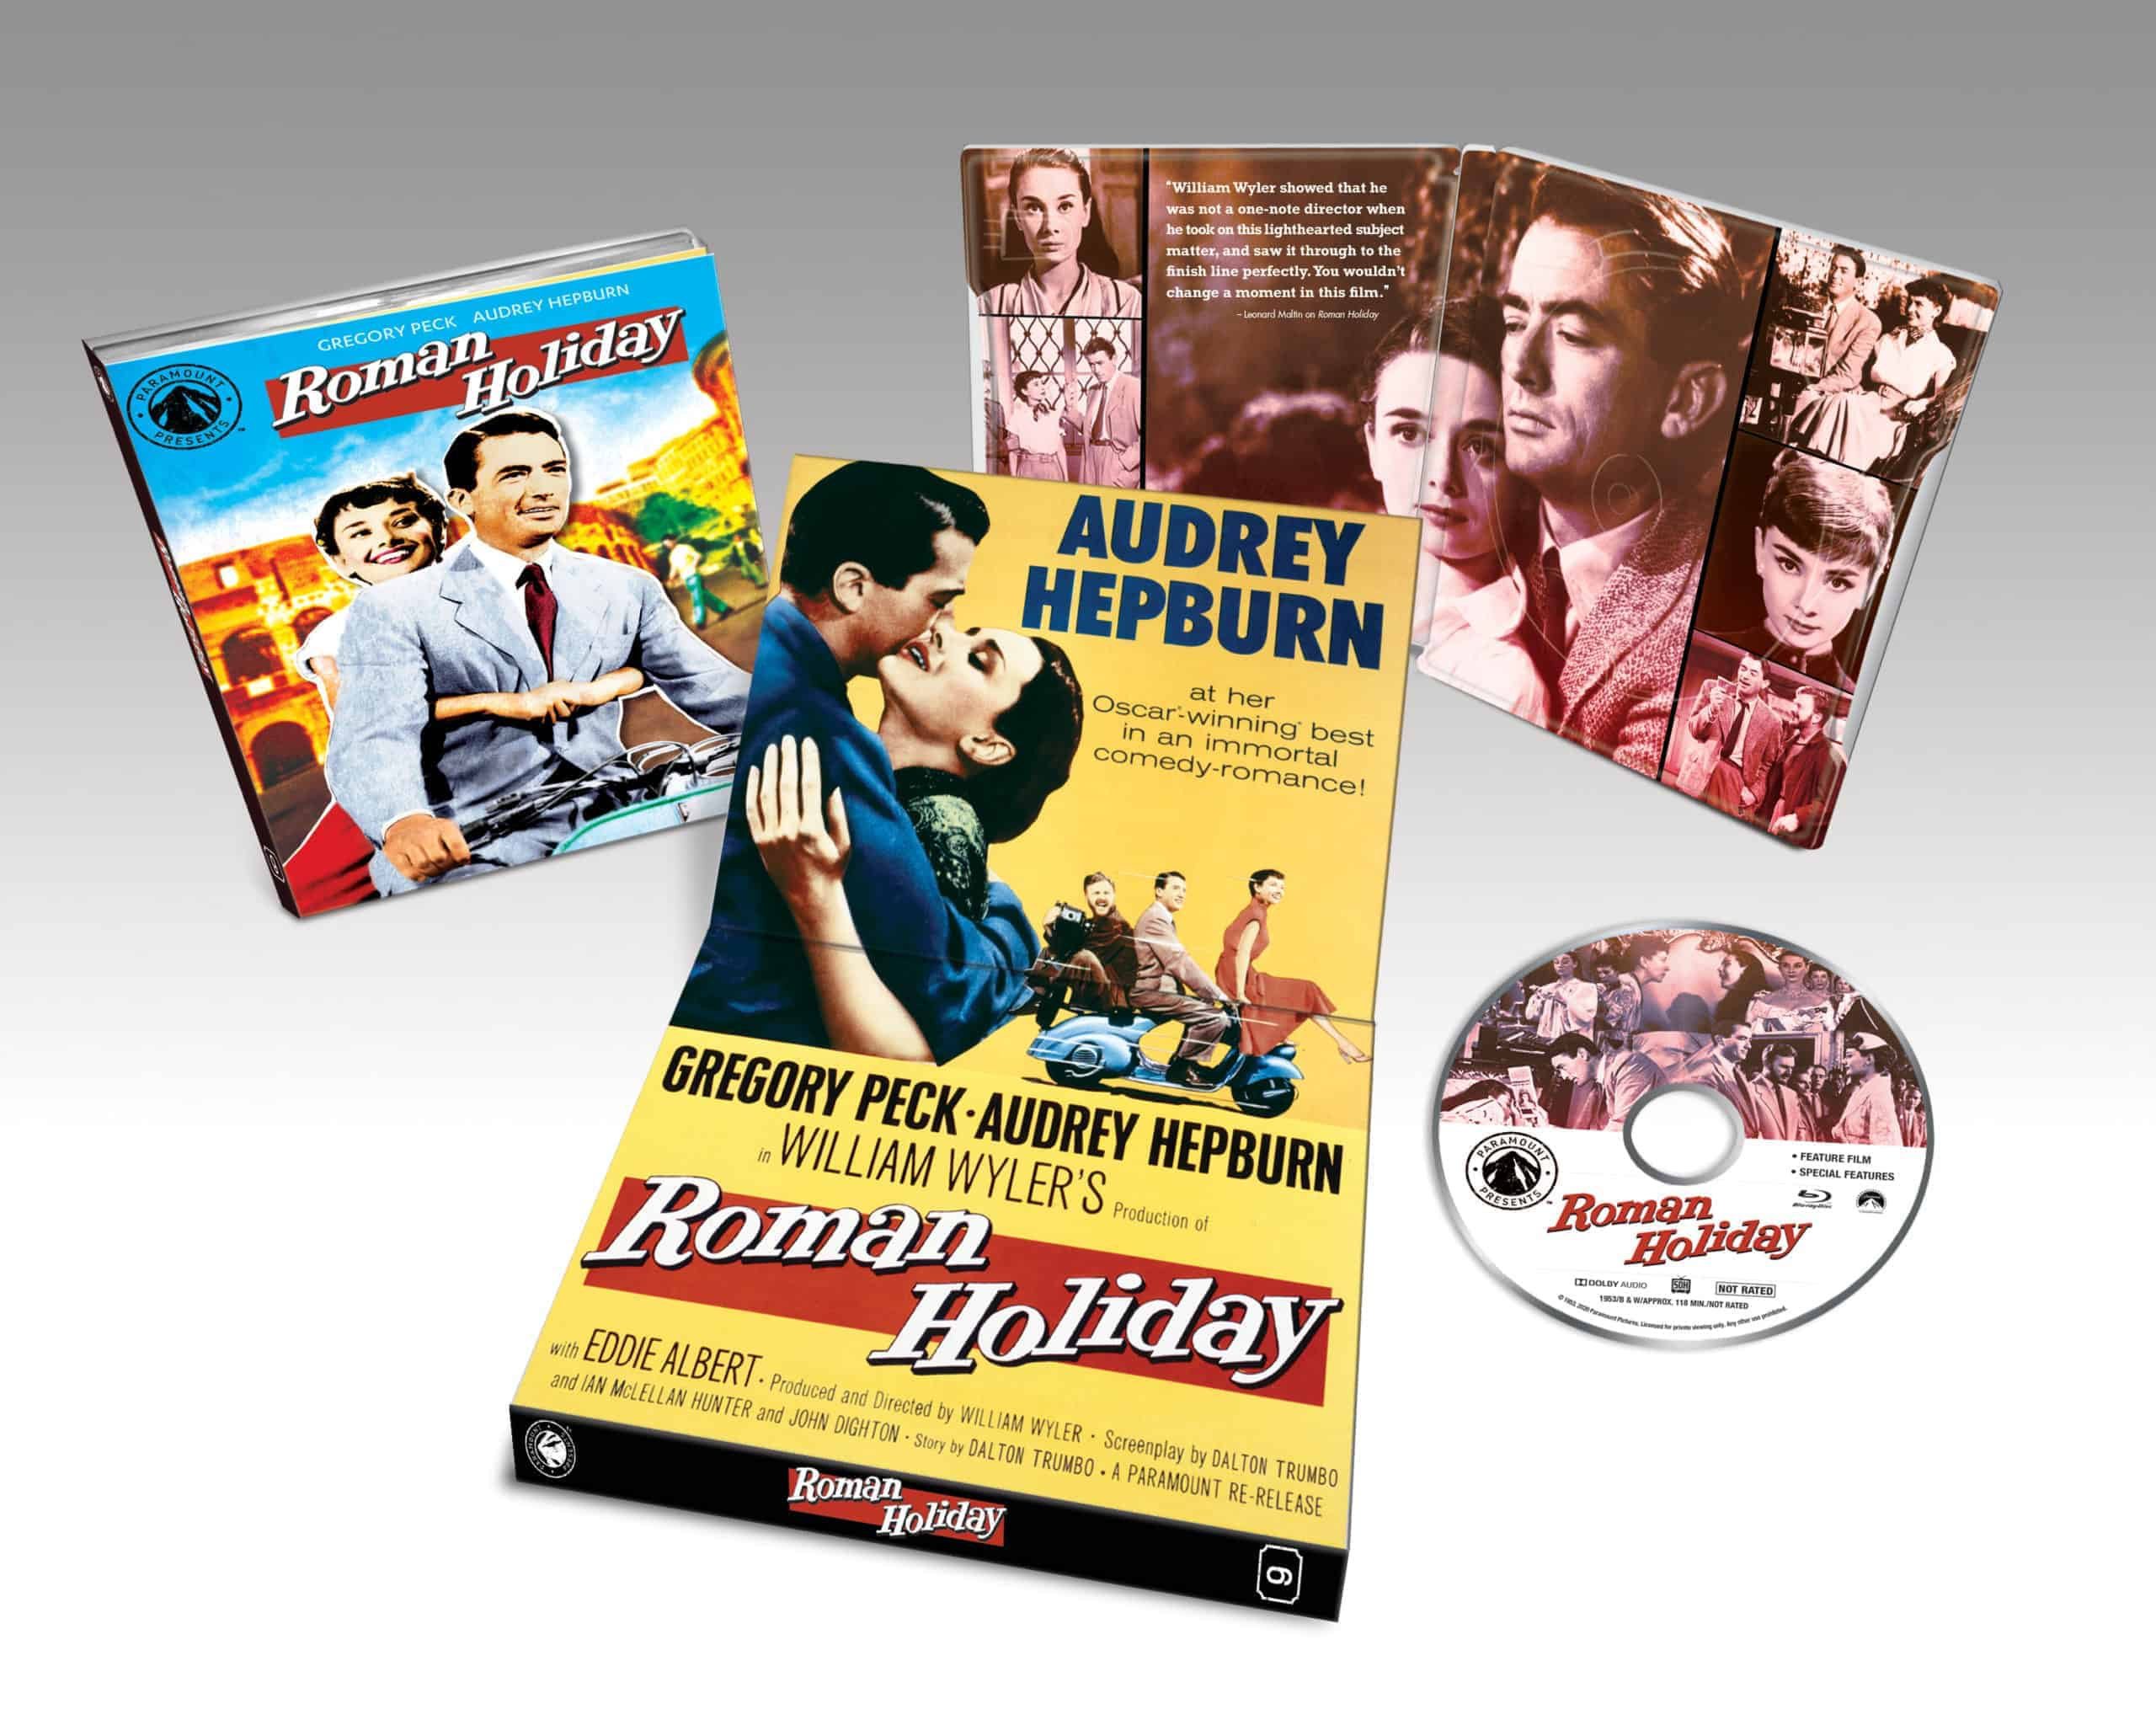 ROMAN HOLIDAY- remastered classic debuts on Blu-ray September 15th 2